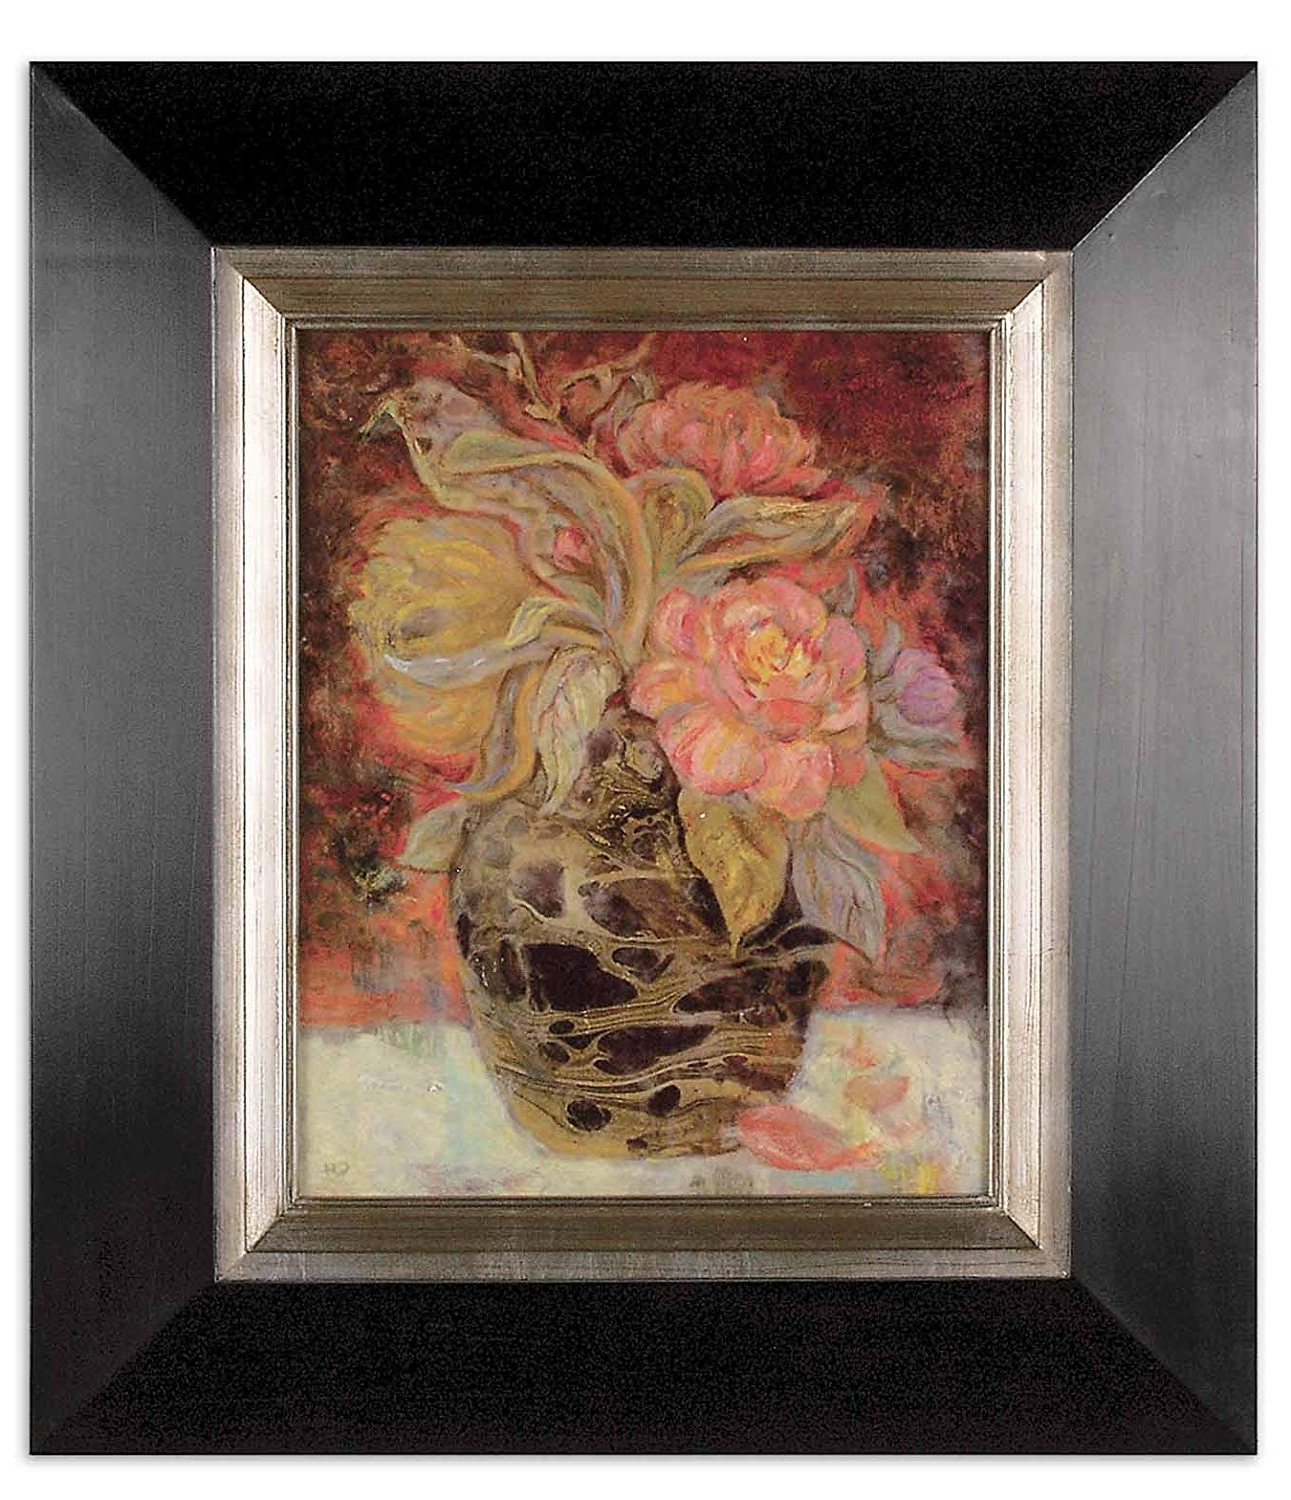 Latest Uttermost Wall Art With Regard To Amazon: Uttermost Floral Bunda Wall Decor: Oil Paintings (View 5 of 15)